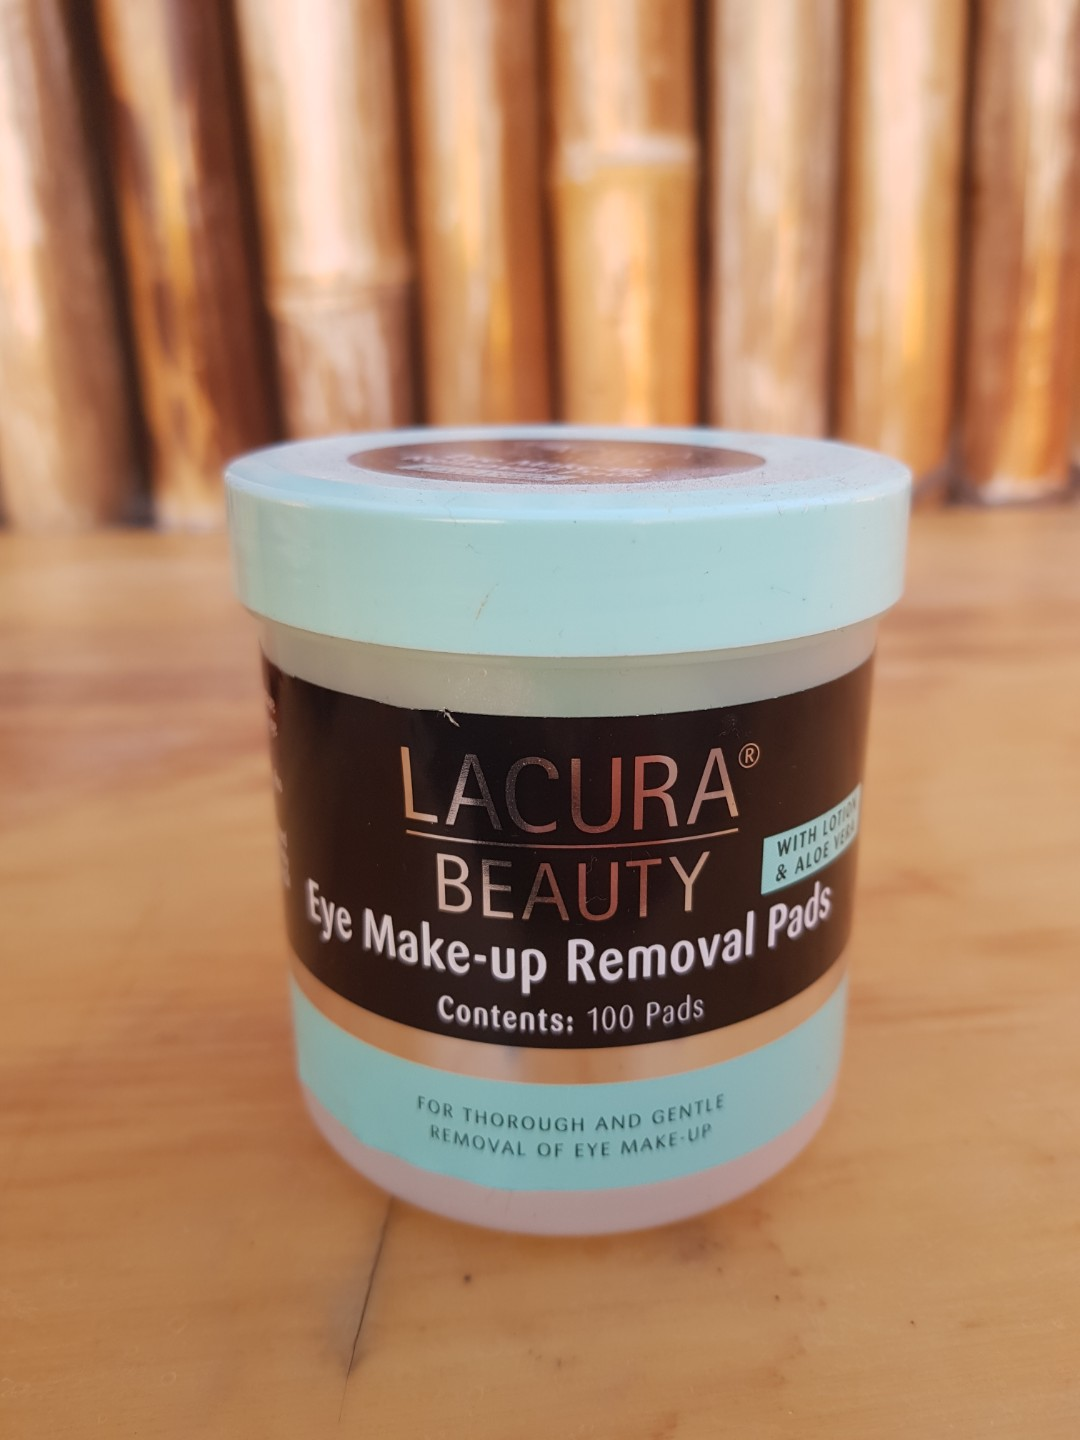 Lacura Eye Makeup Remover Pads